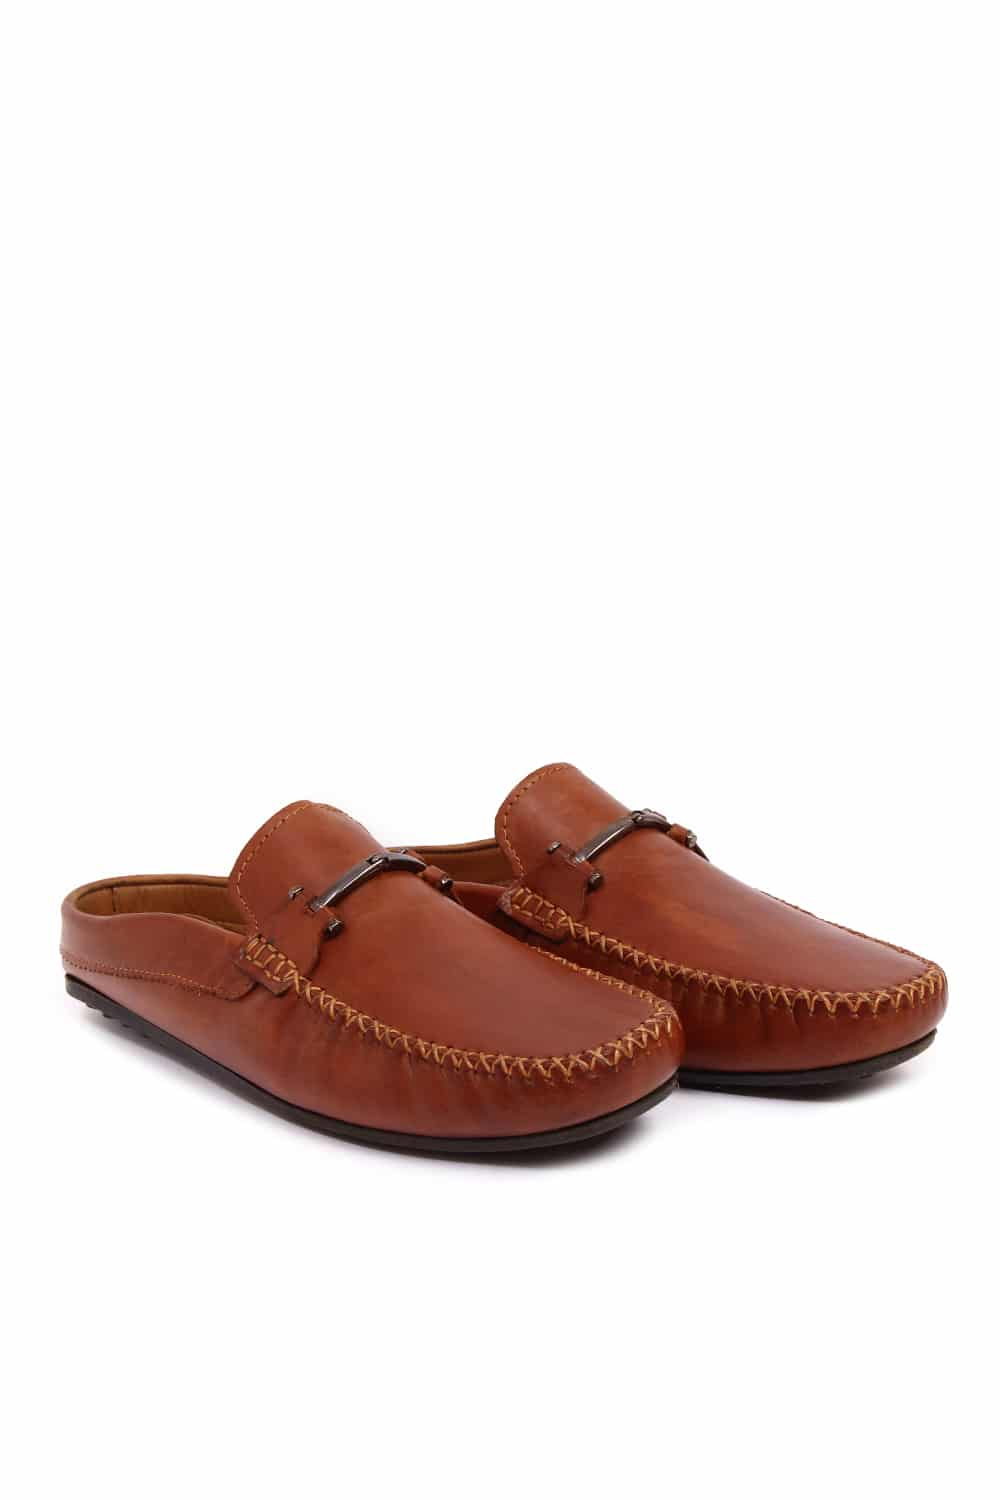 Mules Tan all day shoes